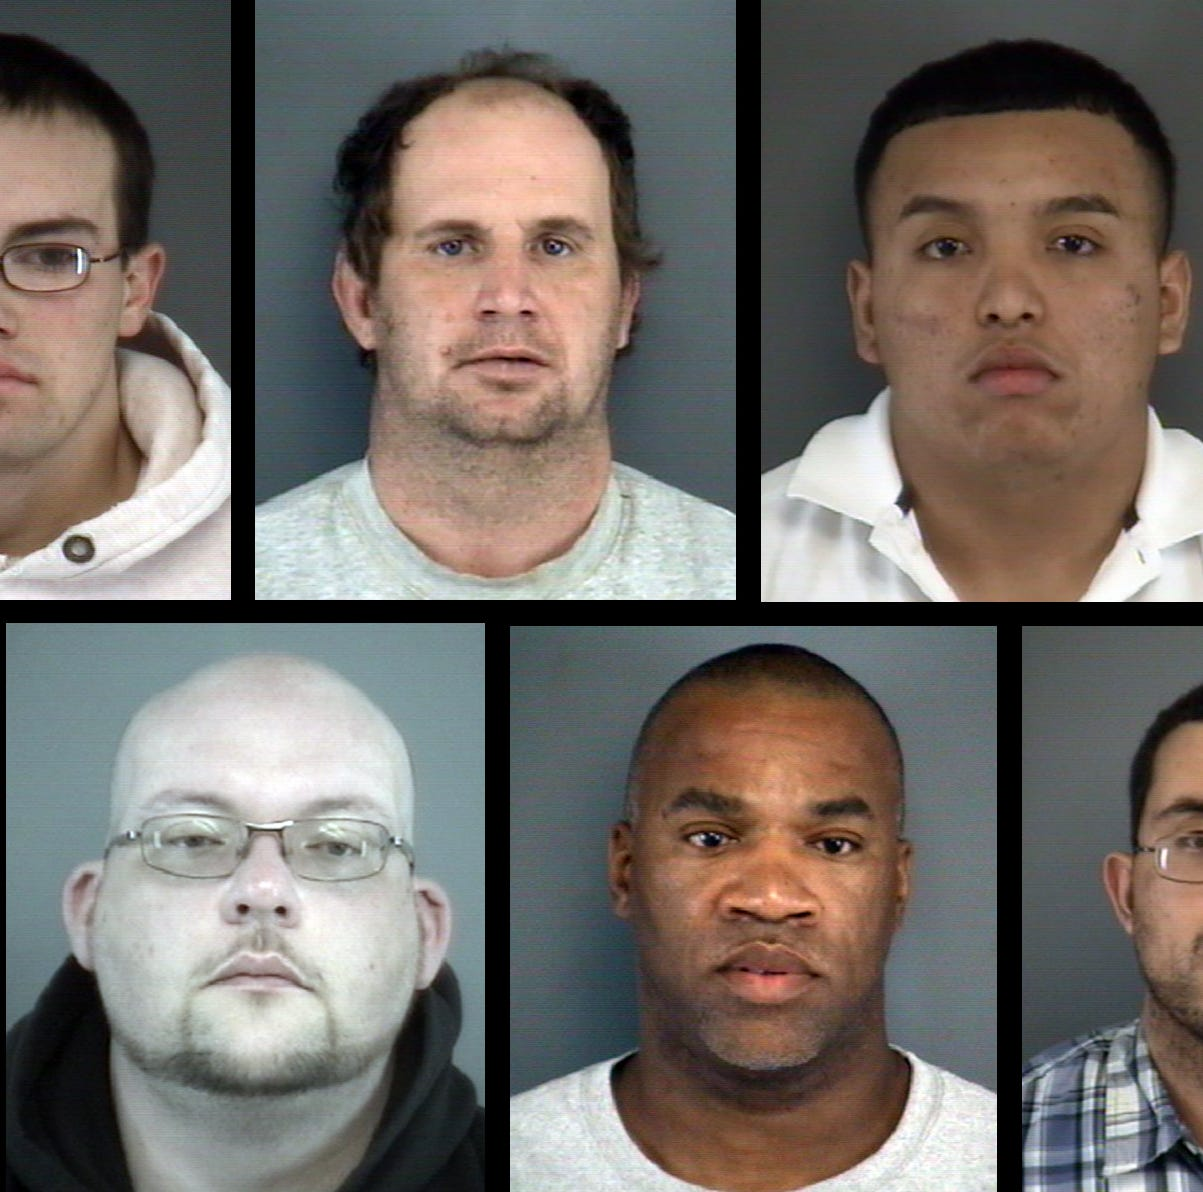 Suspects held at Middle River Regional Jail